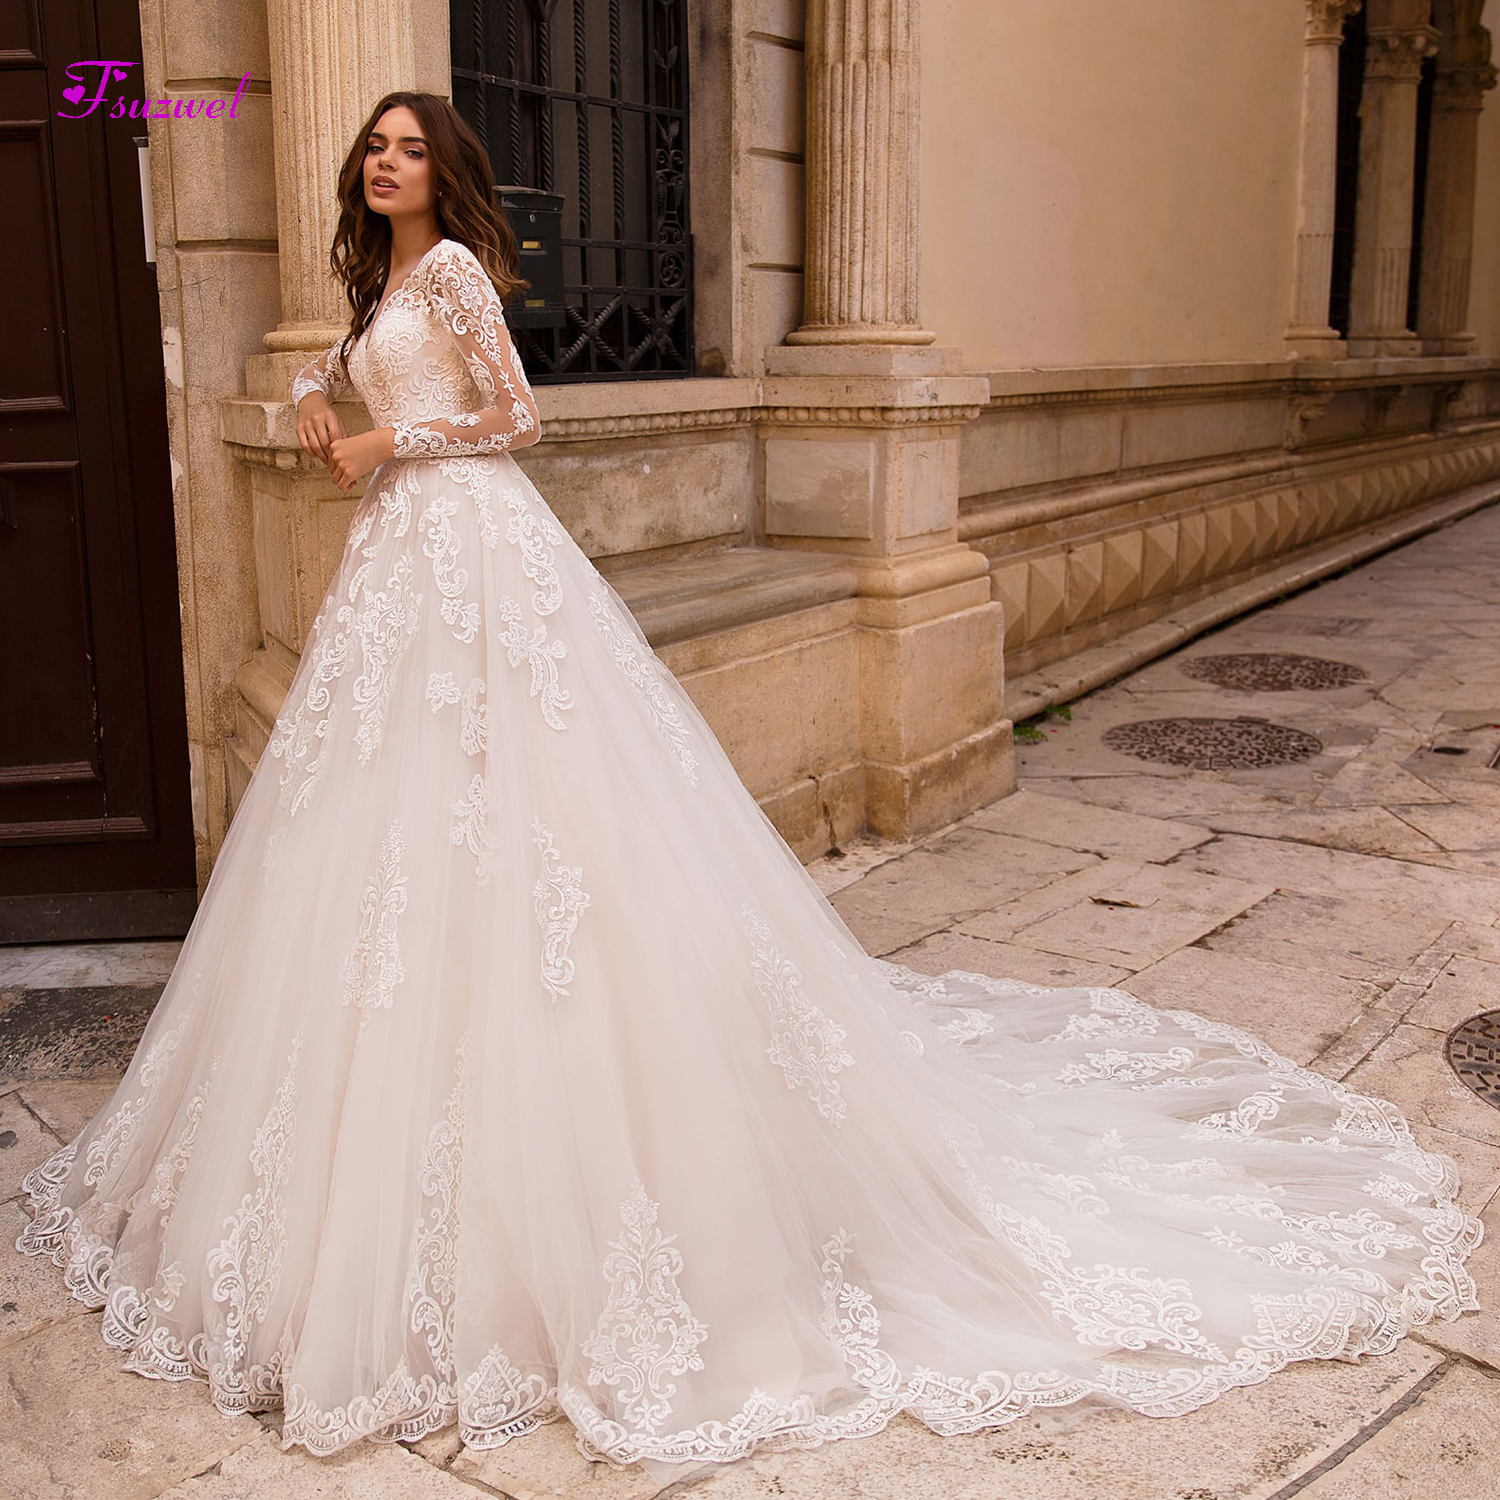 Fsuzwel Vestido de Noiva Appliques Long Sleeves A Line Wedding Dresses 2019 Sexy V neck Lace